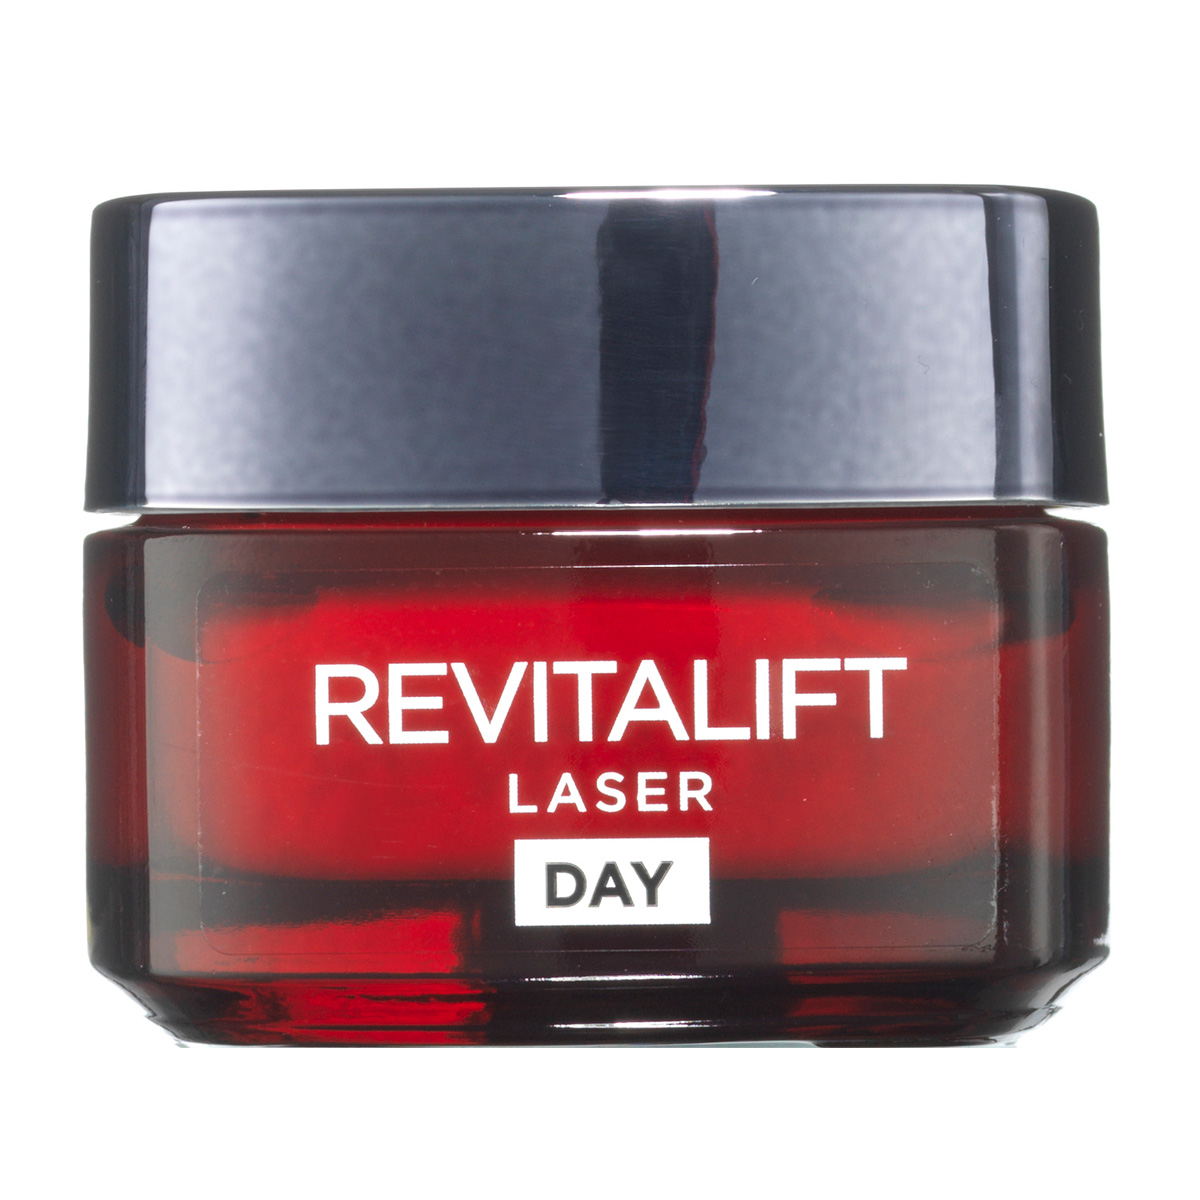 L'Oréal Paris Revitalift Laser Advanced Anti-Ageing Care Day - 50 ml Anti-aging dagcreme til moden hud